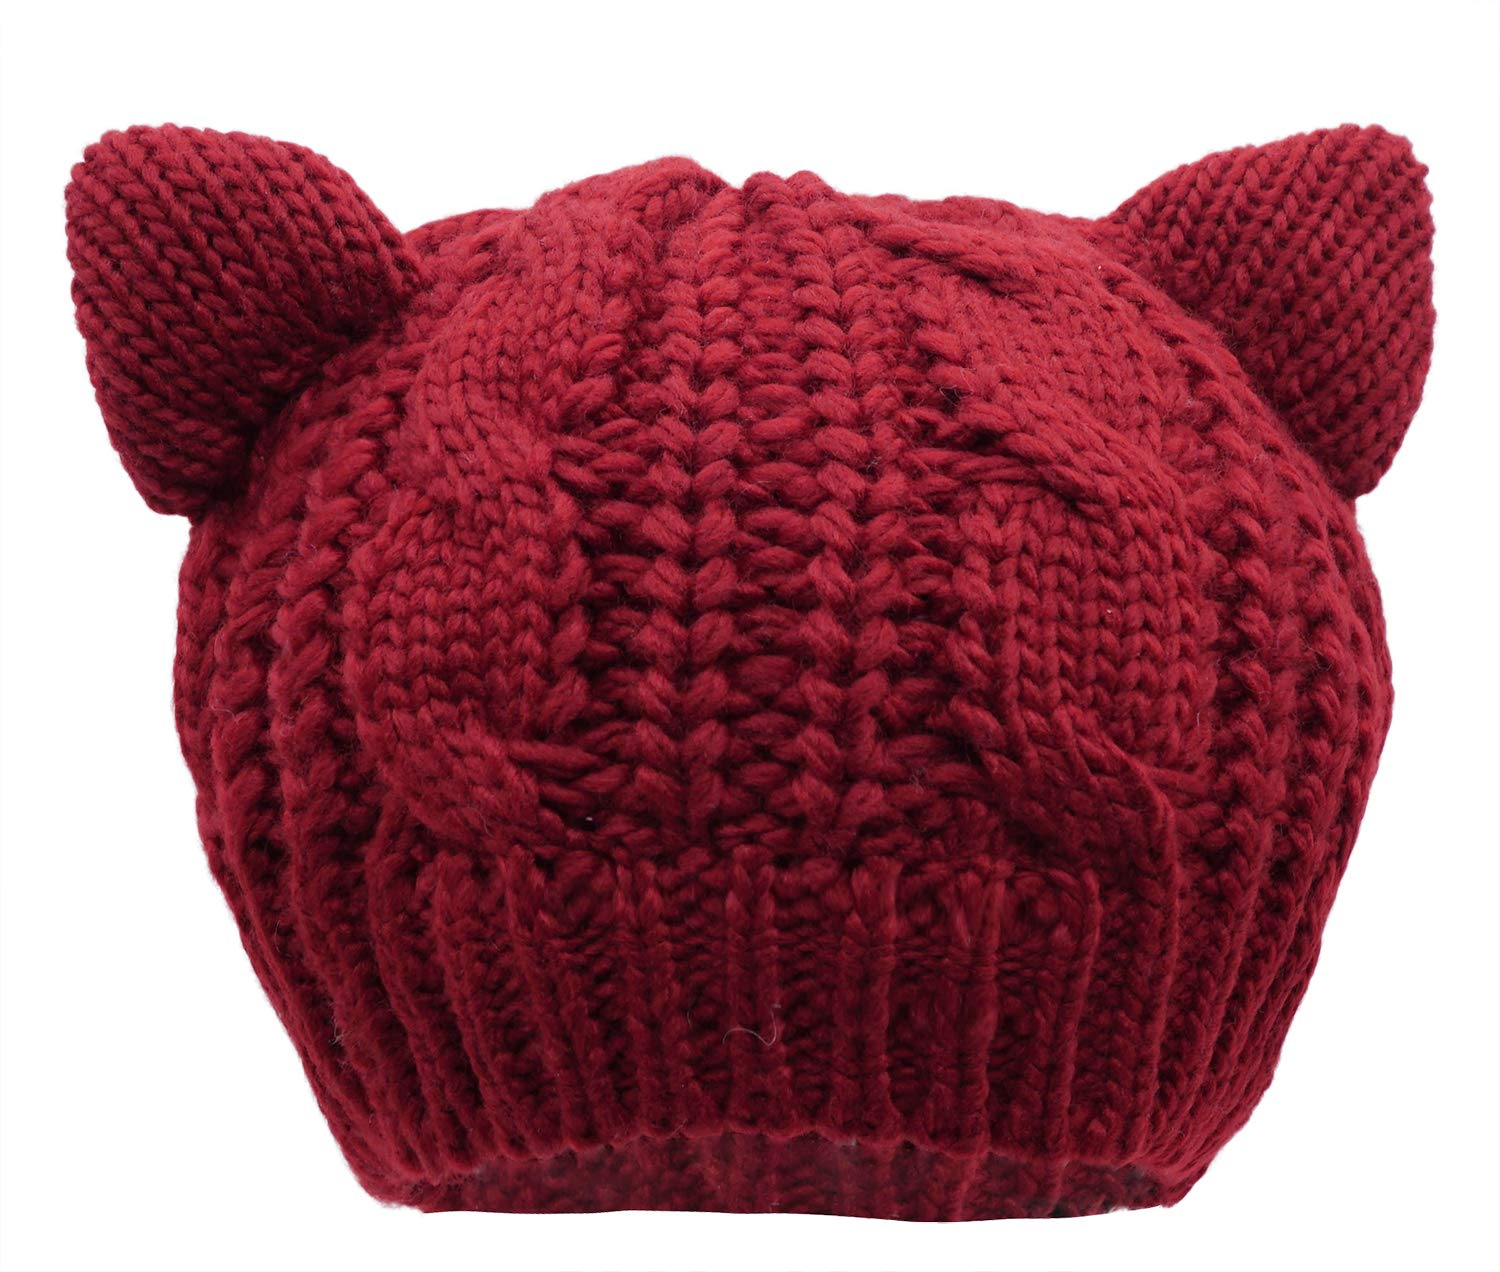 15 Knitting and Crochet Patterns to Keep Your Pet Warm | 1272x1500